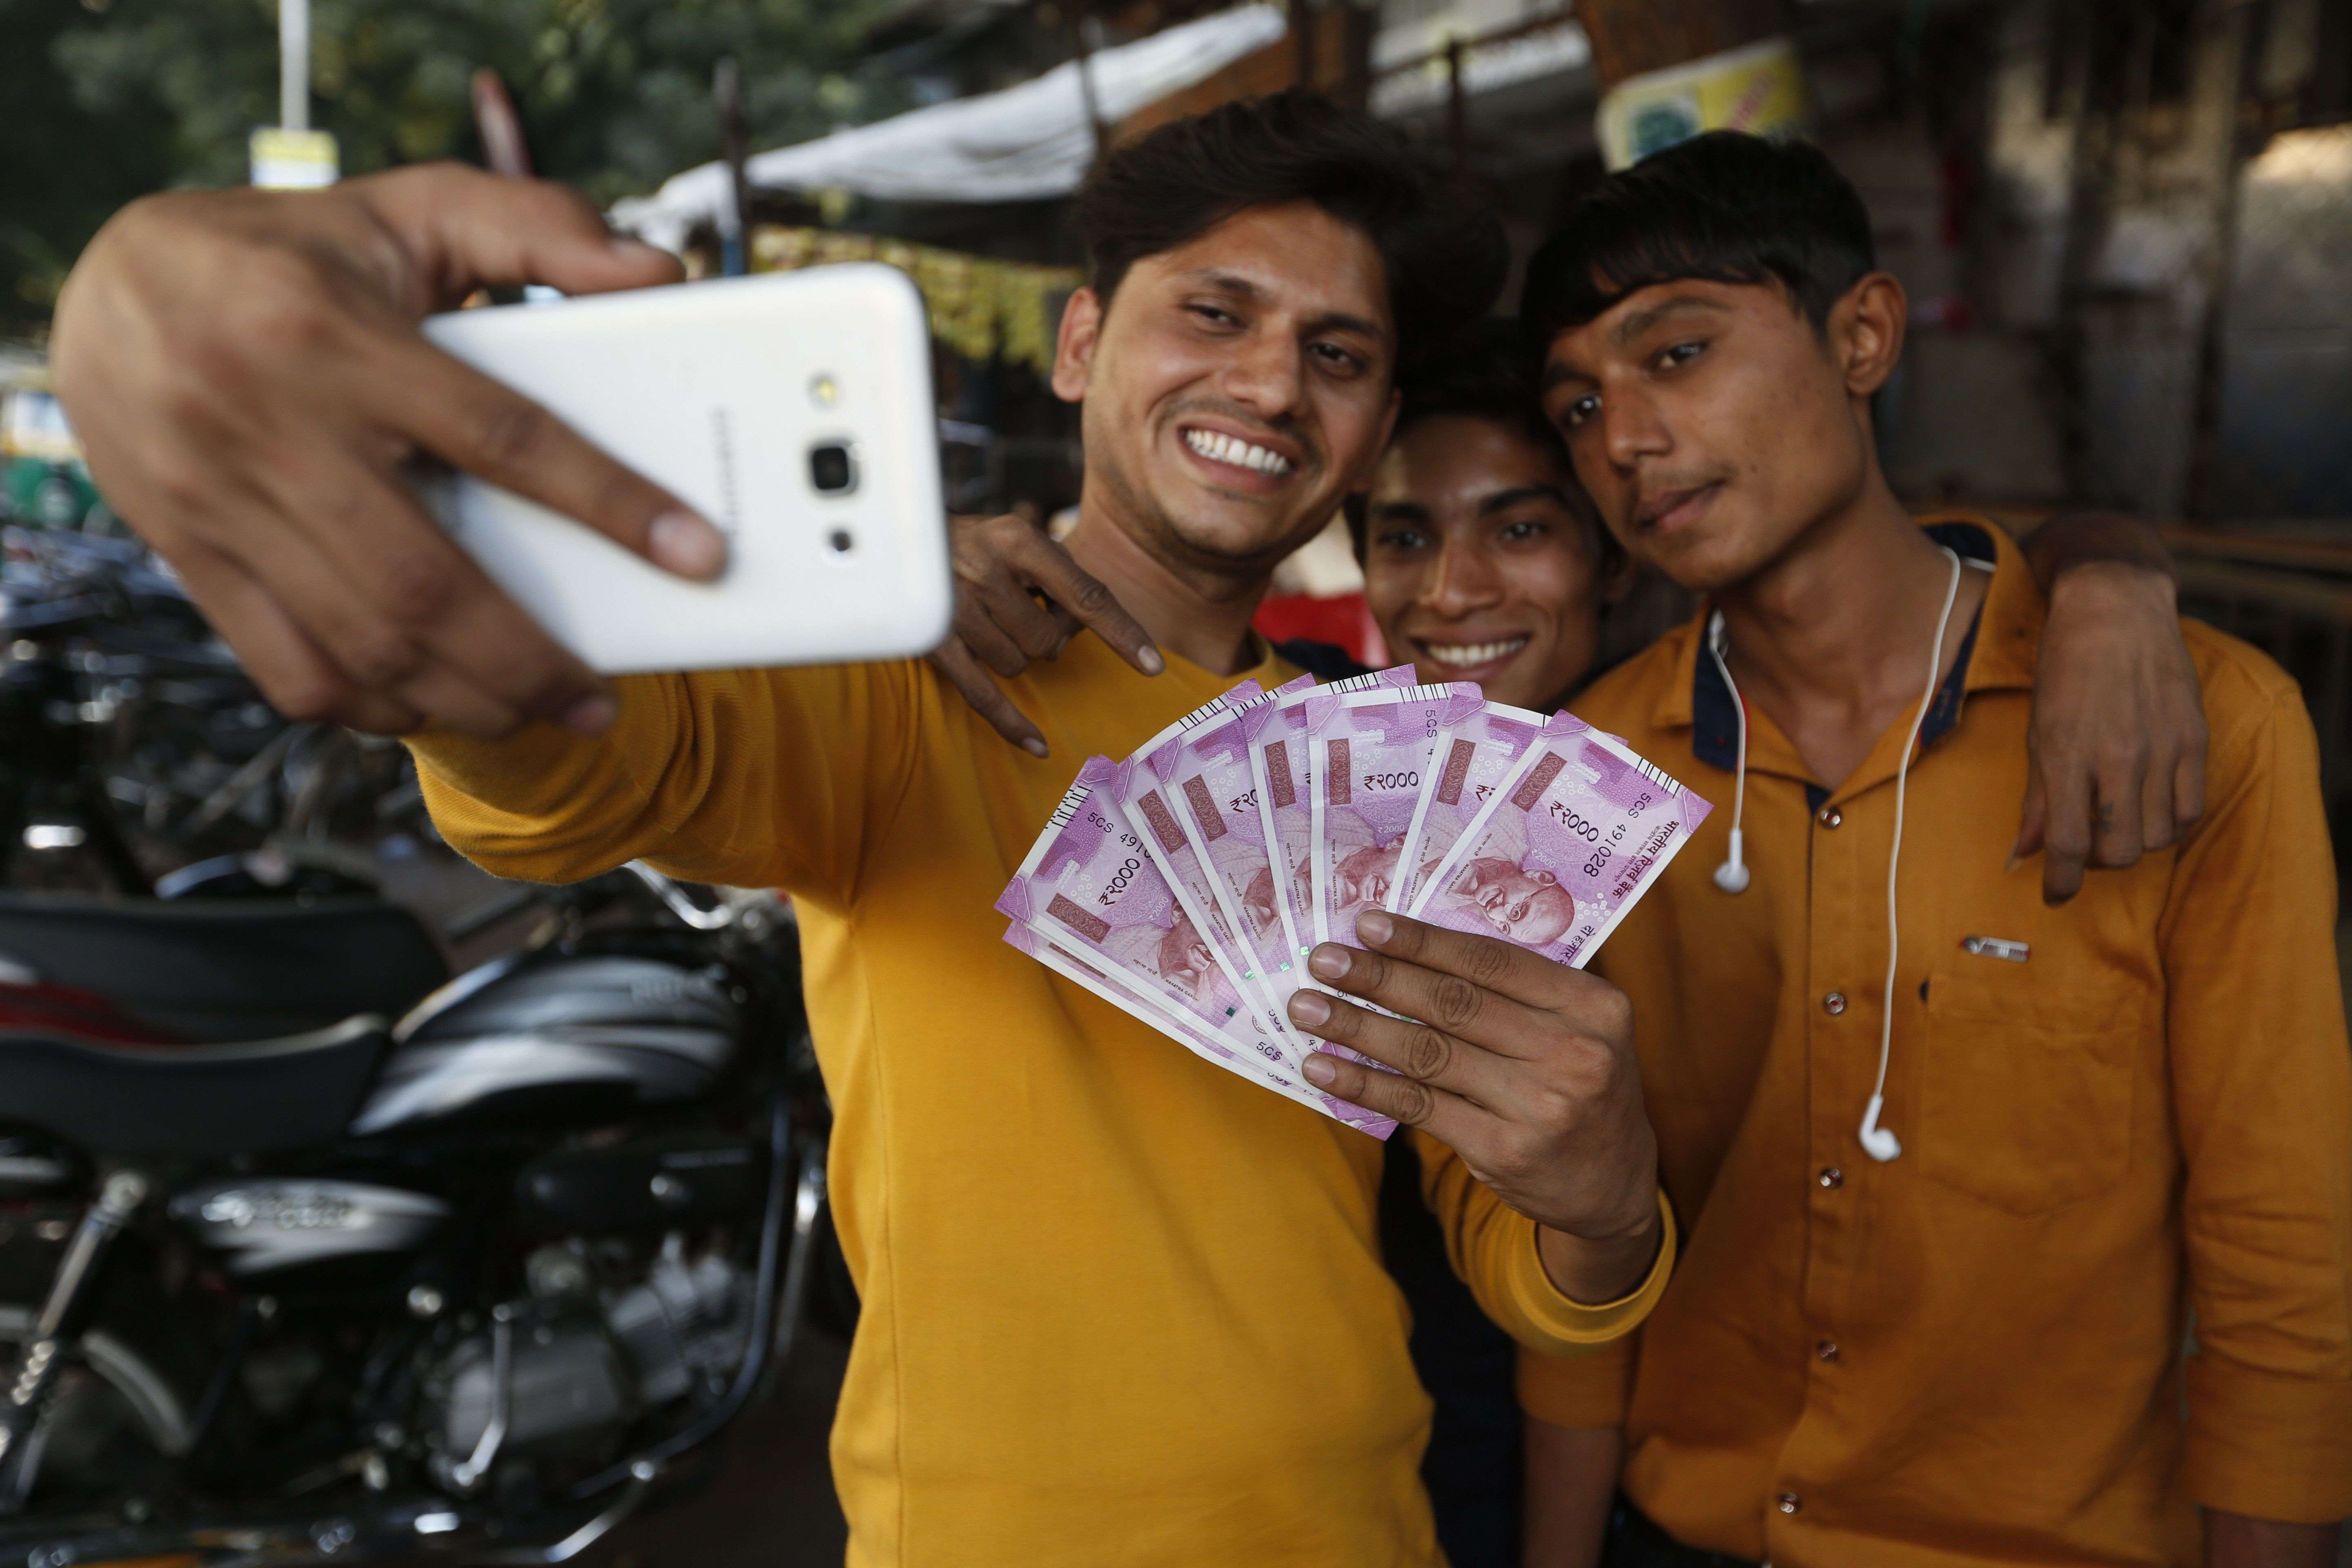 Indians takes selfie with new currency notes of 2000 Indian rupee in Ahmadabad, India, Friday, Nov. 11, 2016. Delivering one of India's biggest-ever economic upsets, Prime Minister Narendra Modi this week declared the bulk of Indian currency notes no longer held any value and told anyone holding those bills to take them to banks to deposit or exchange them. (AP Photo/Ajit Solanki)